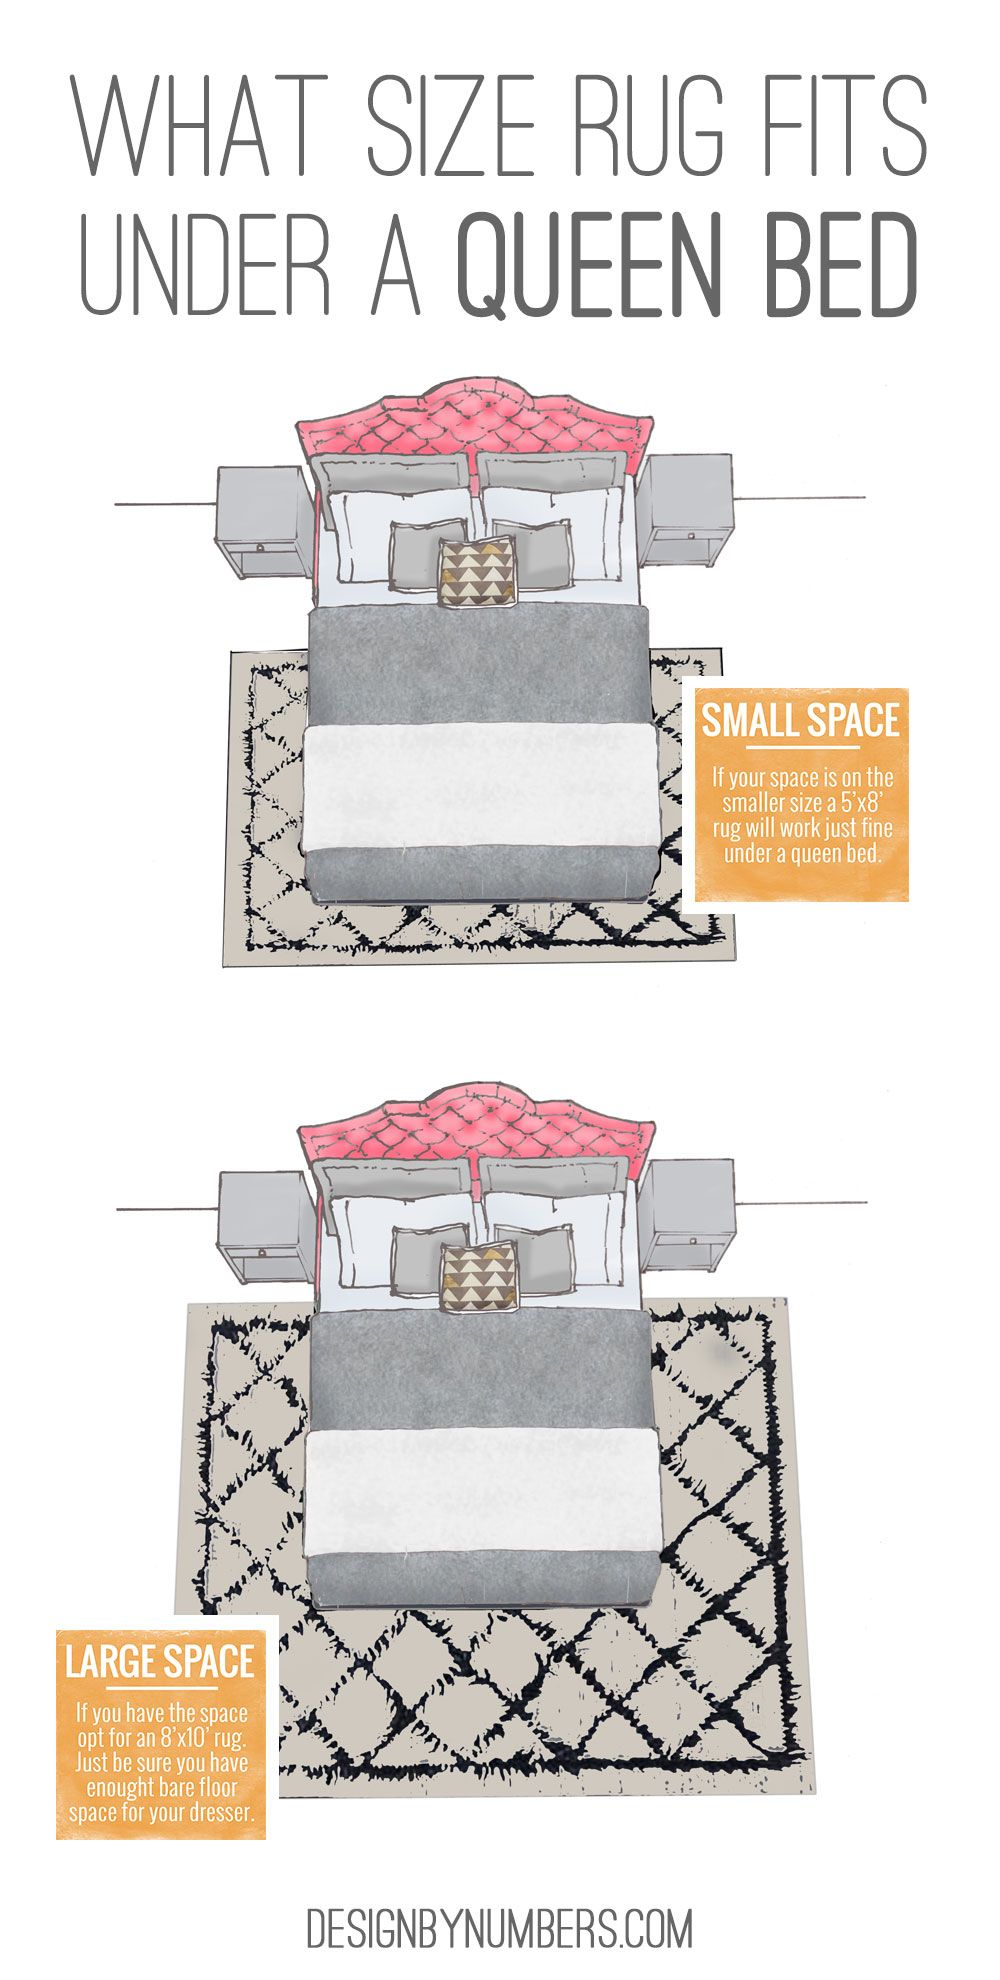 The Rug Size You Need And How Much You Should Pay With Images